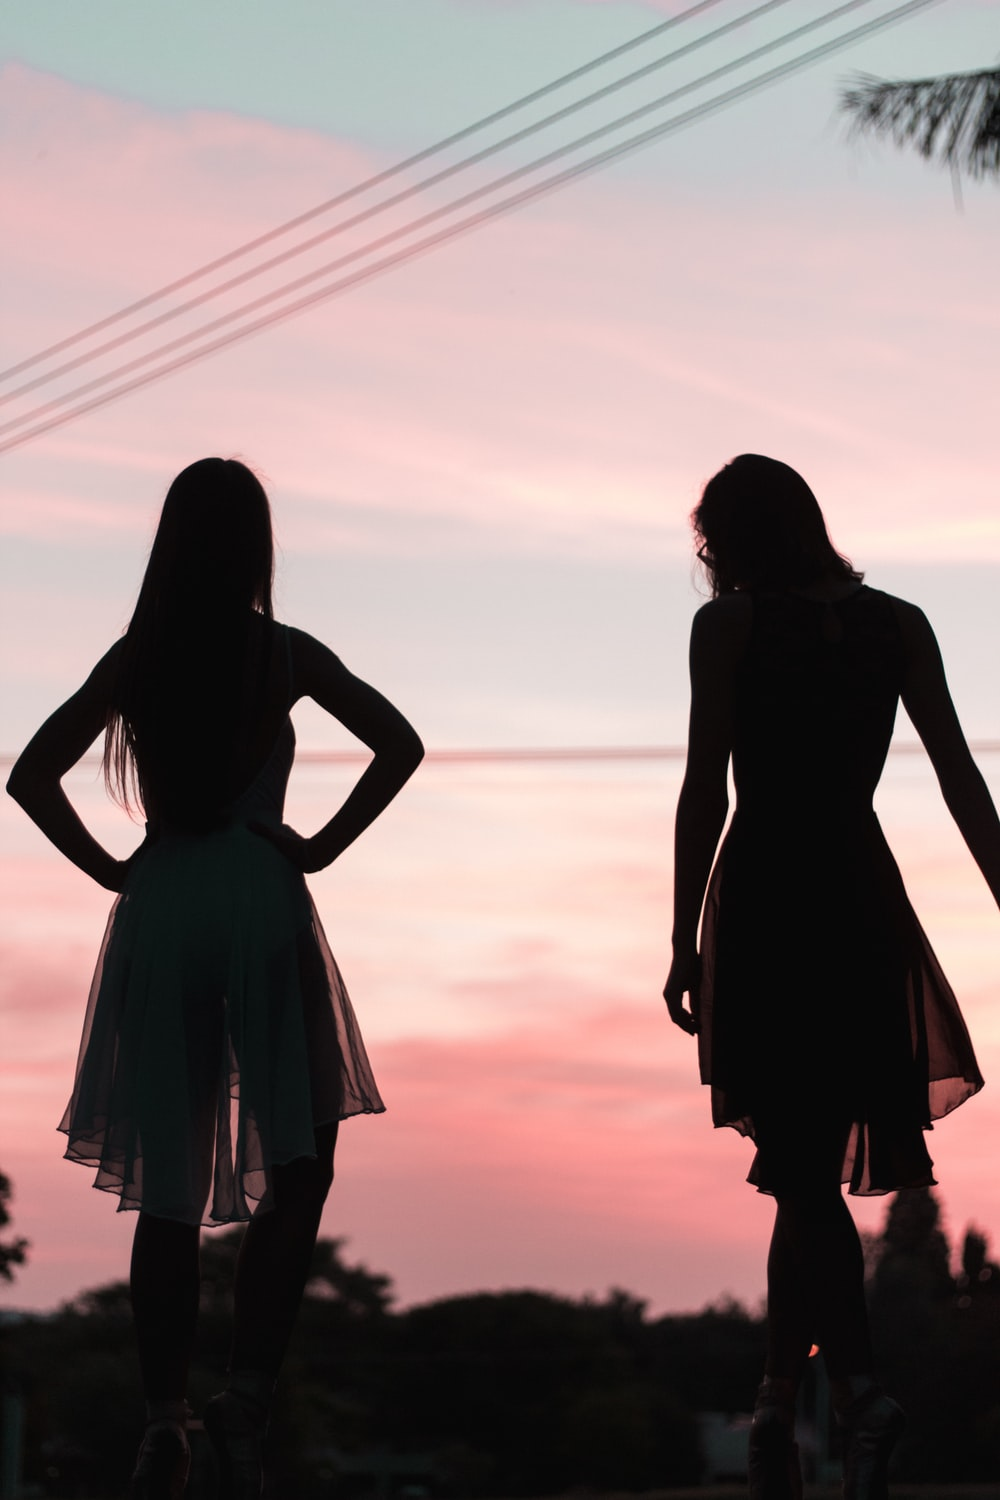 2 women in dress standing on beach during sunset